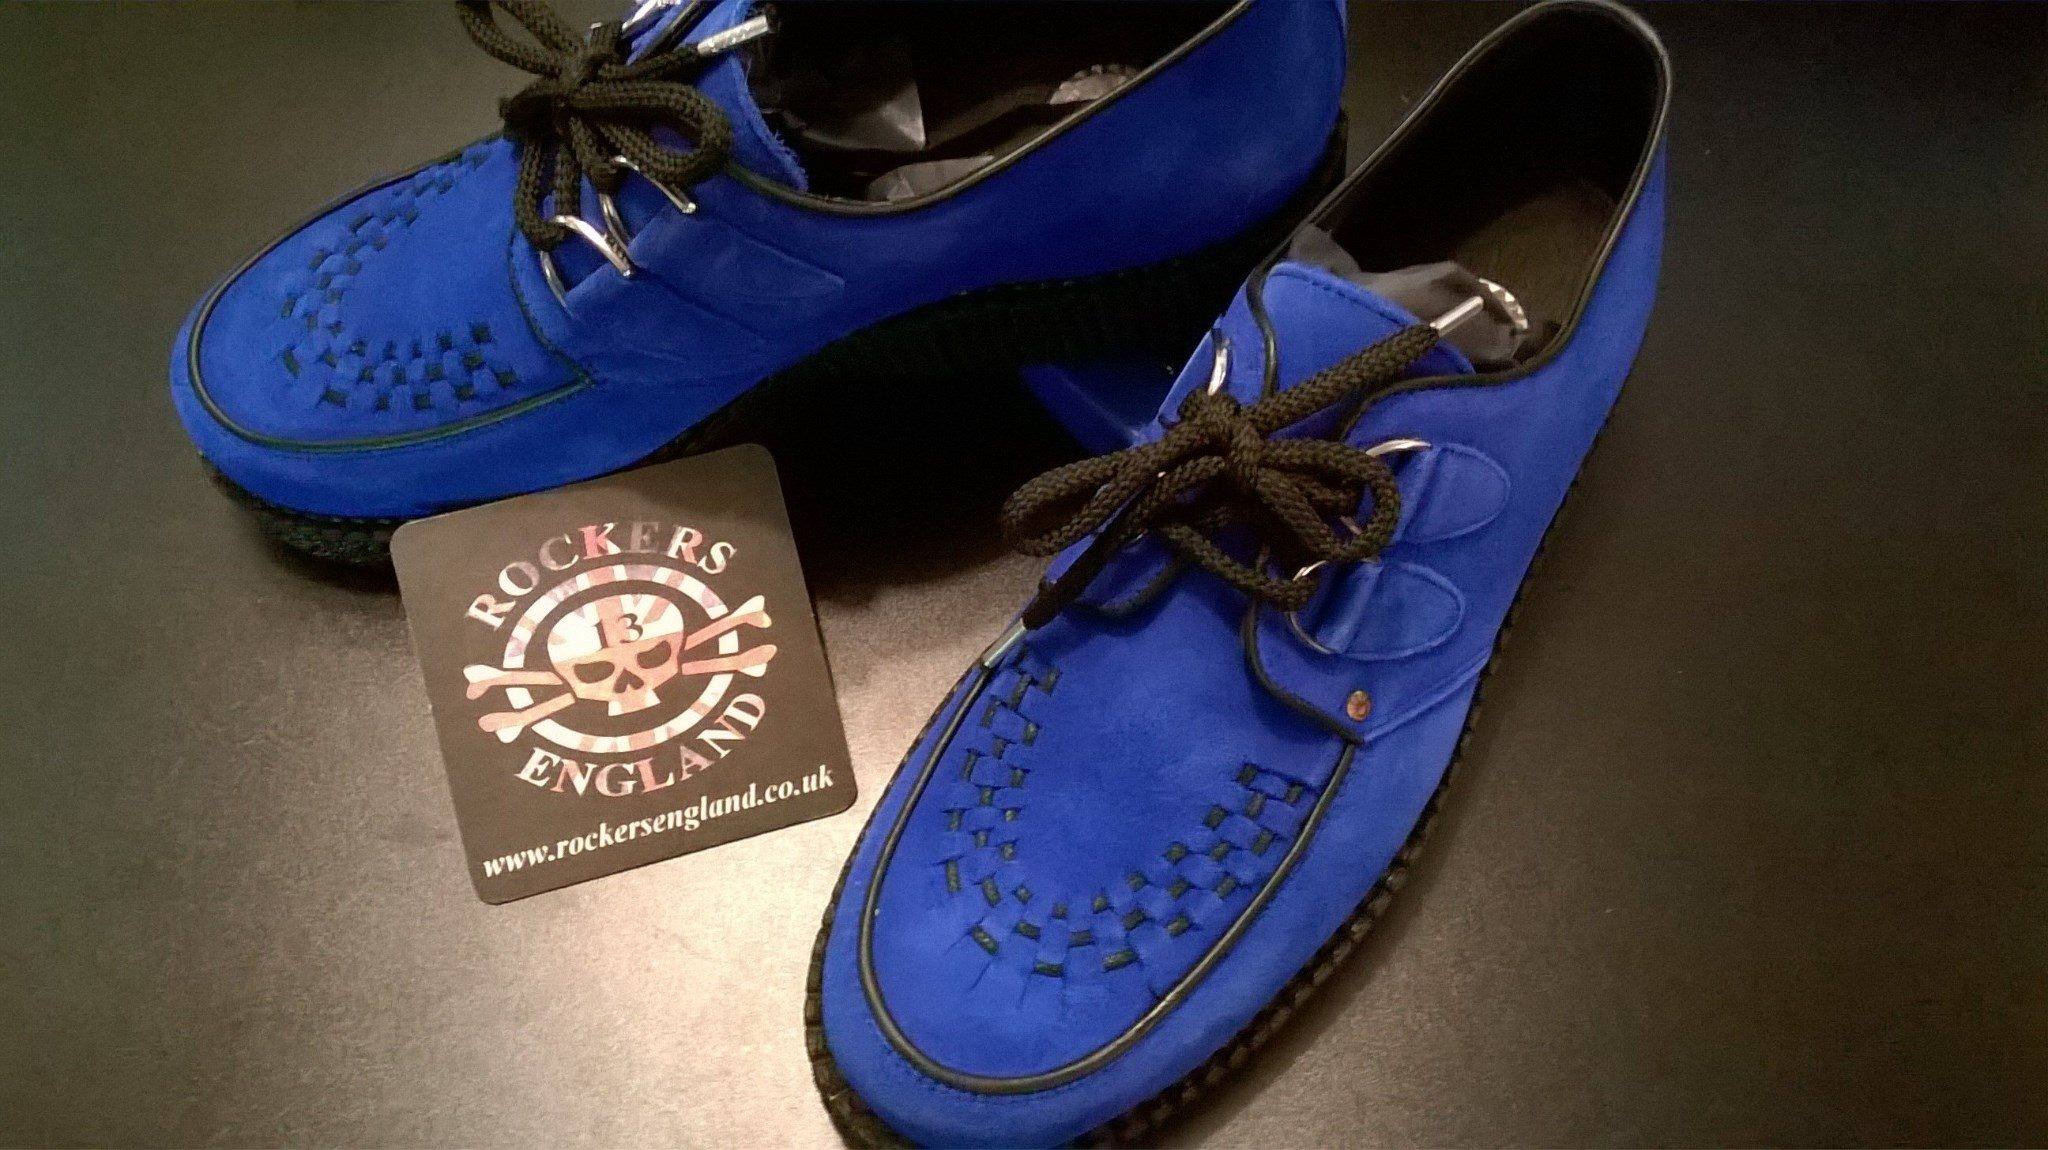 11c94f54c3cd2 Suede Creepers Blue Sole Single Suede Suede Blue Creepers Single Blue  Single Sole qRZOfa8Pw